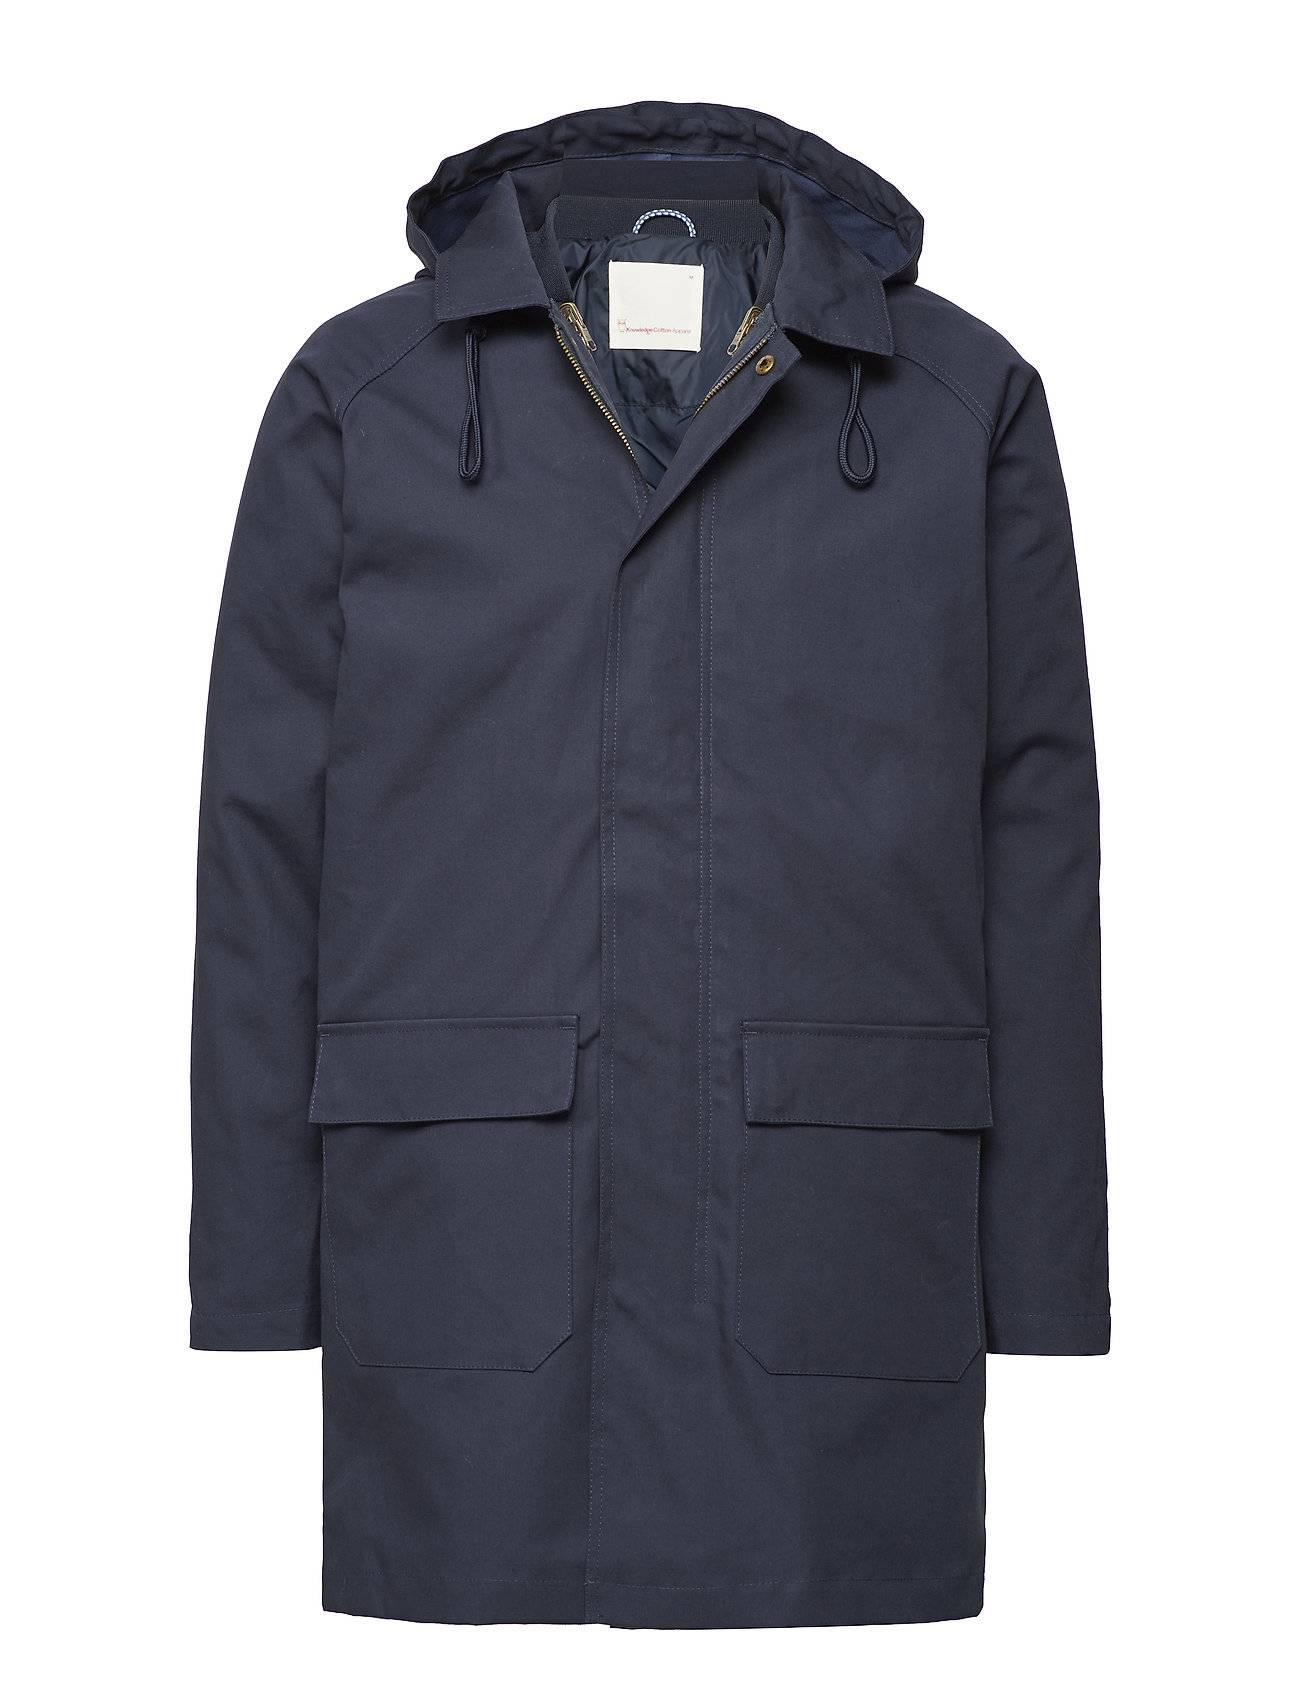 Knowledge Cotton Apparel Bounded Parca Jacket - Grs